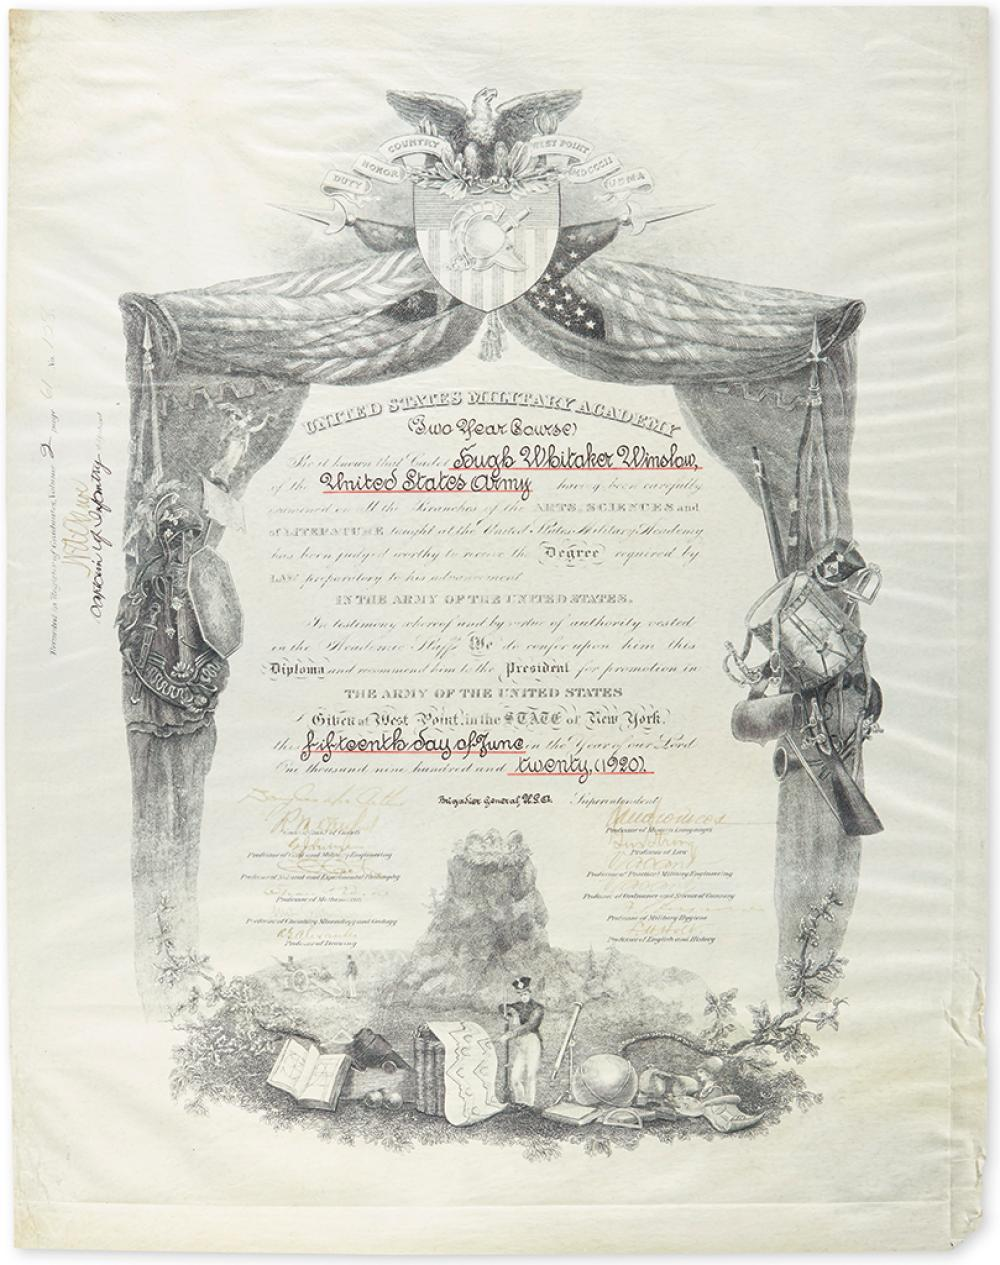 MACARTHUR, DOUGLAS. Partly-printed vellum Document Signed, as Superintendant of West Point, graduation diploma for Hugh Whitaker Winslo